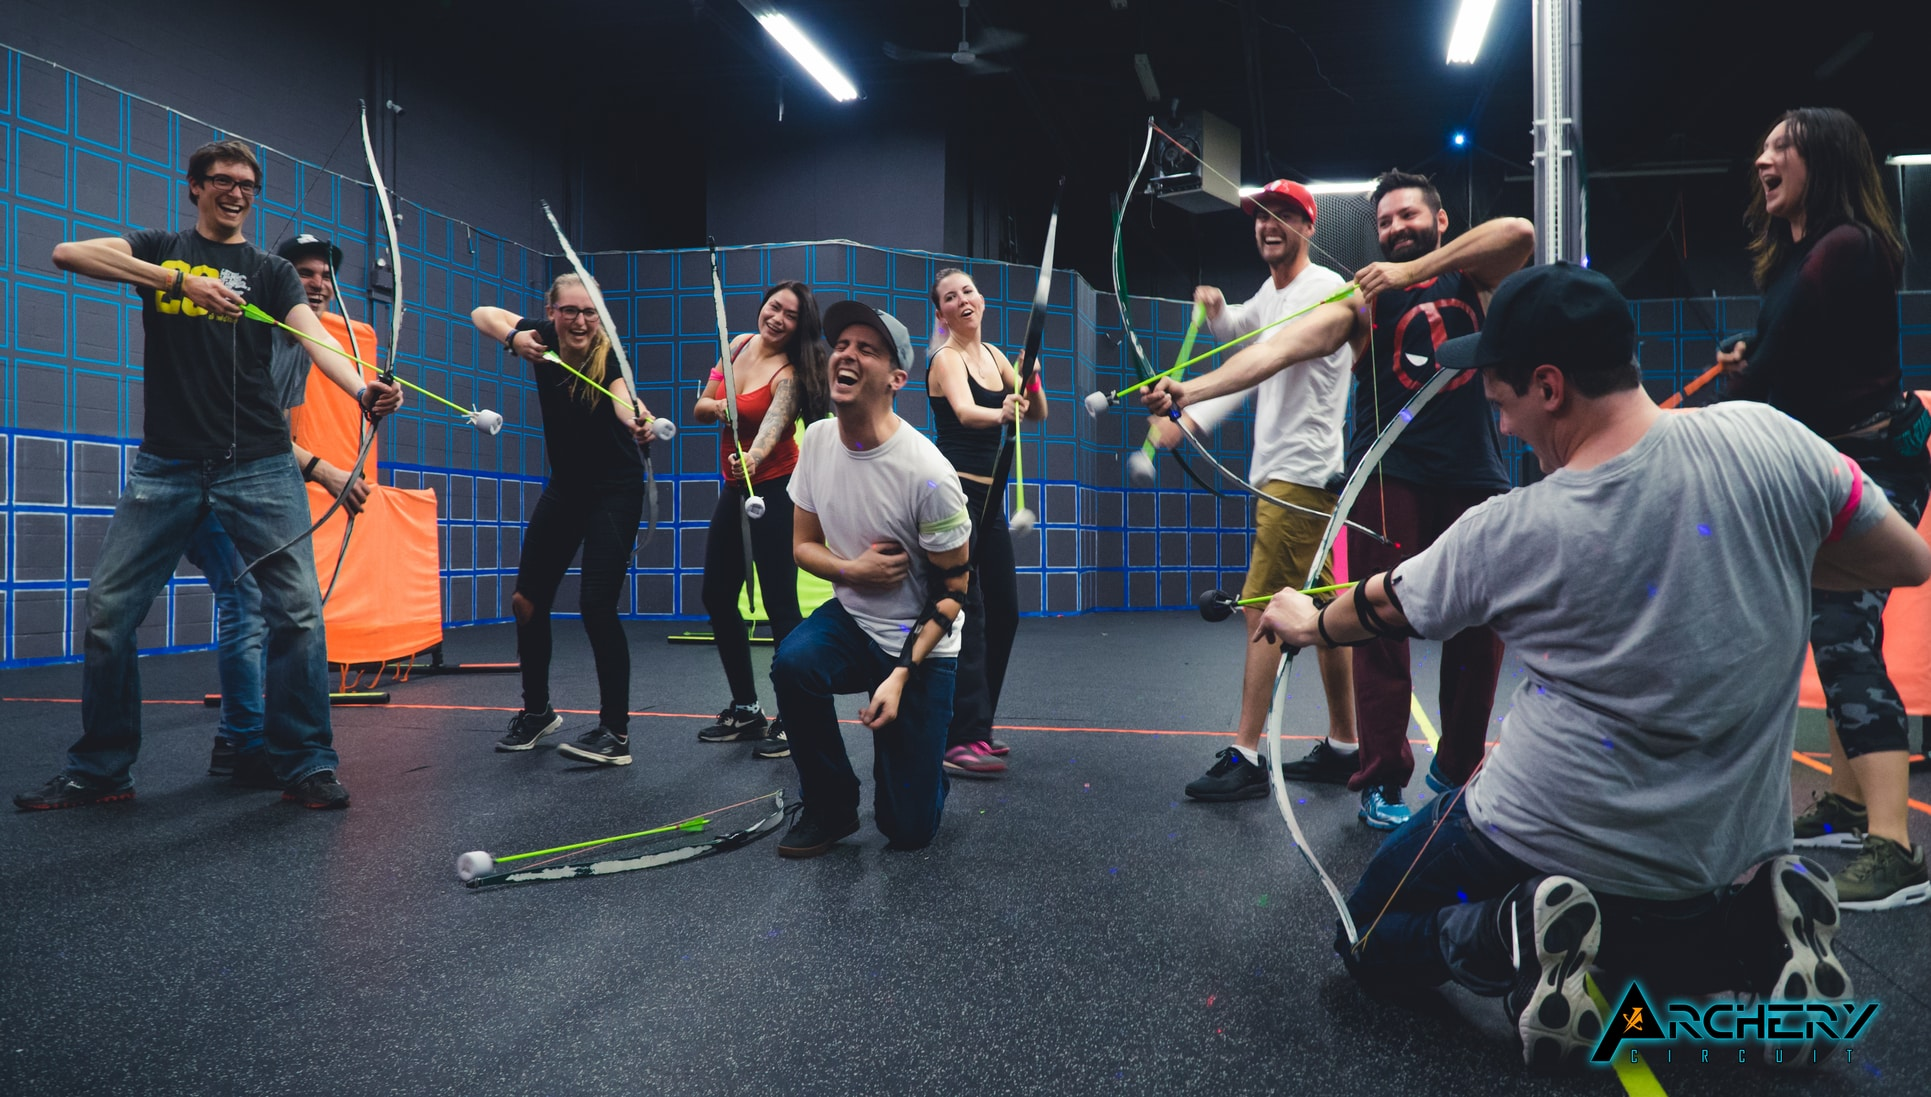 adult archery tag birthday party